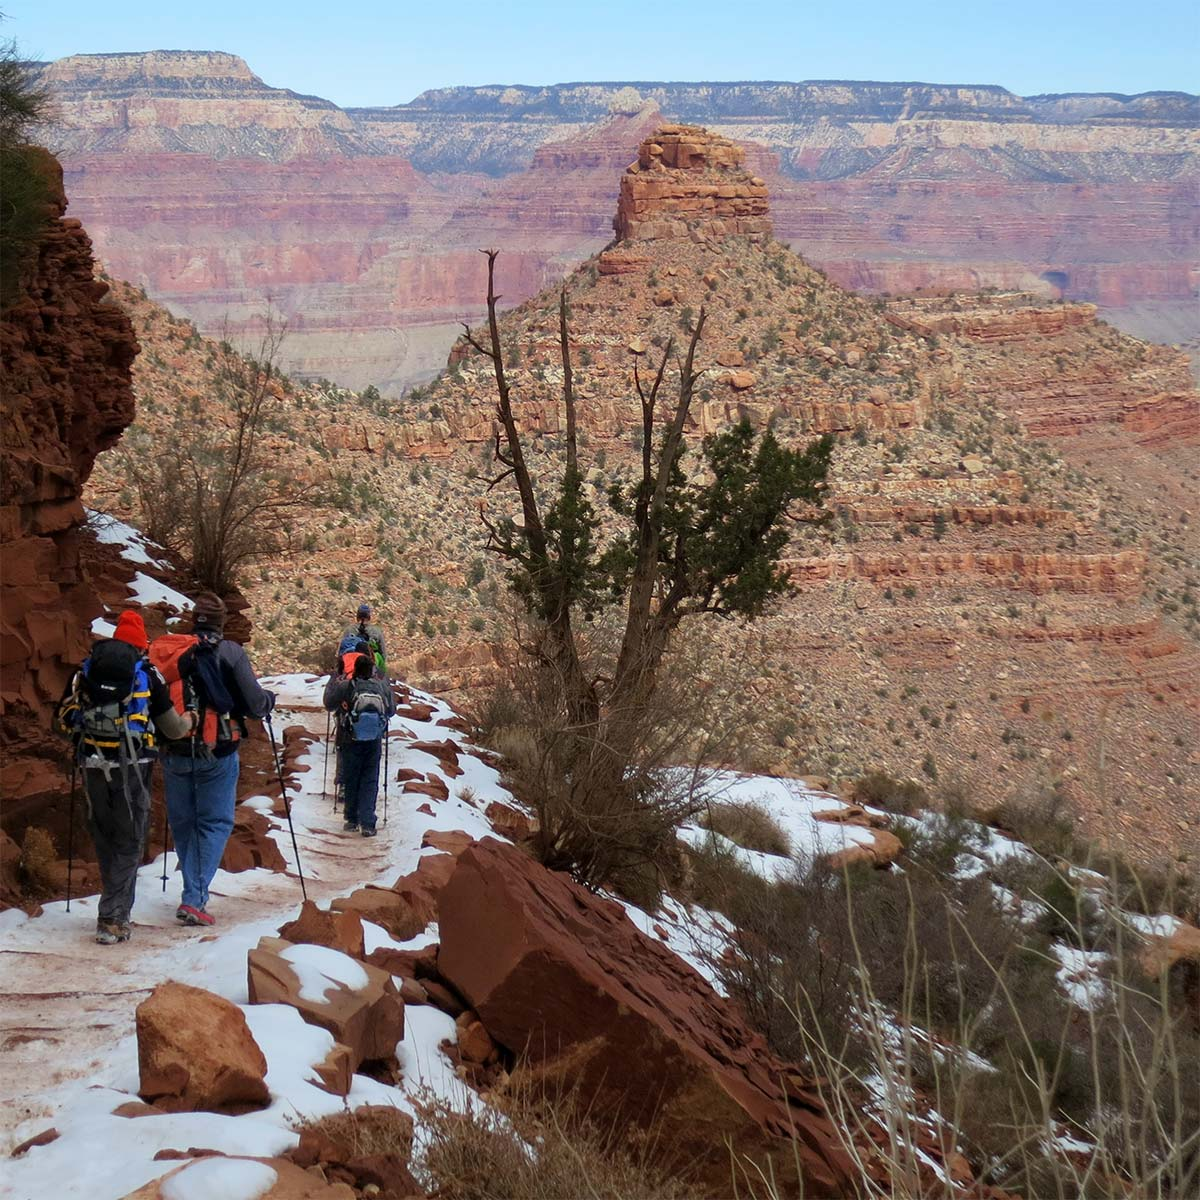 Grand Canyon Nps On Twitter Hiking During The Winter In